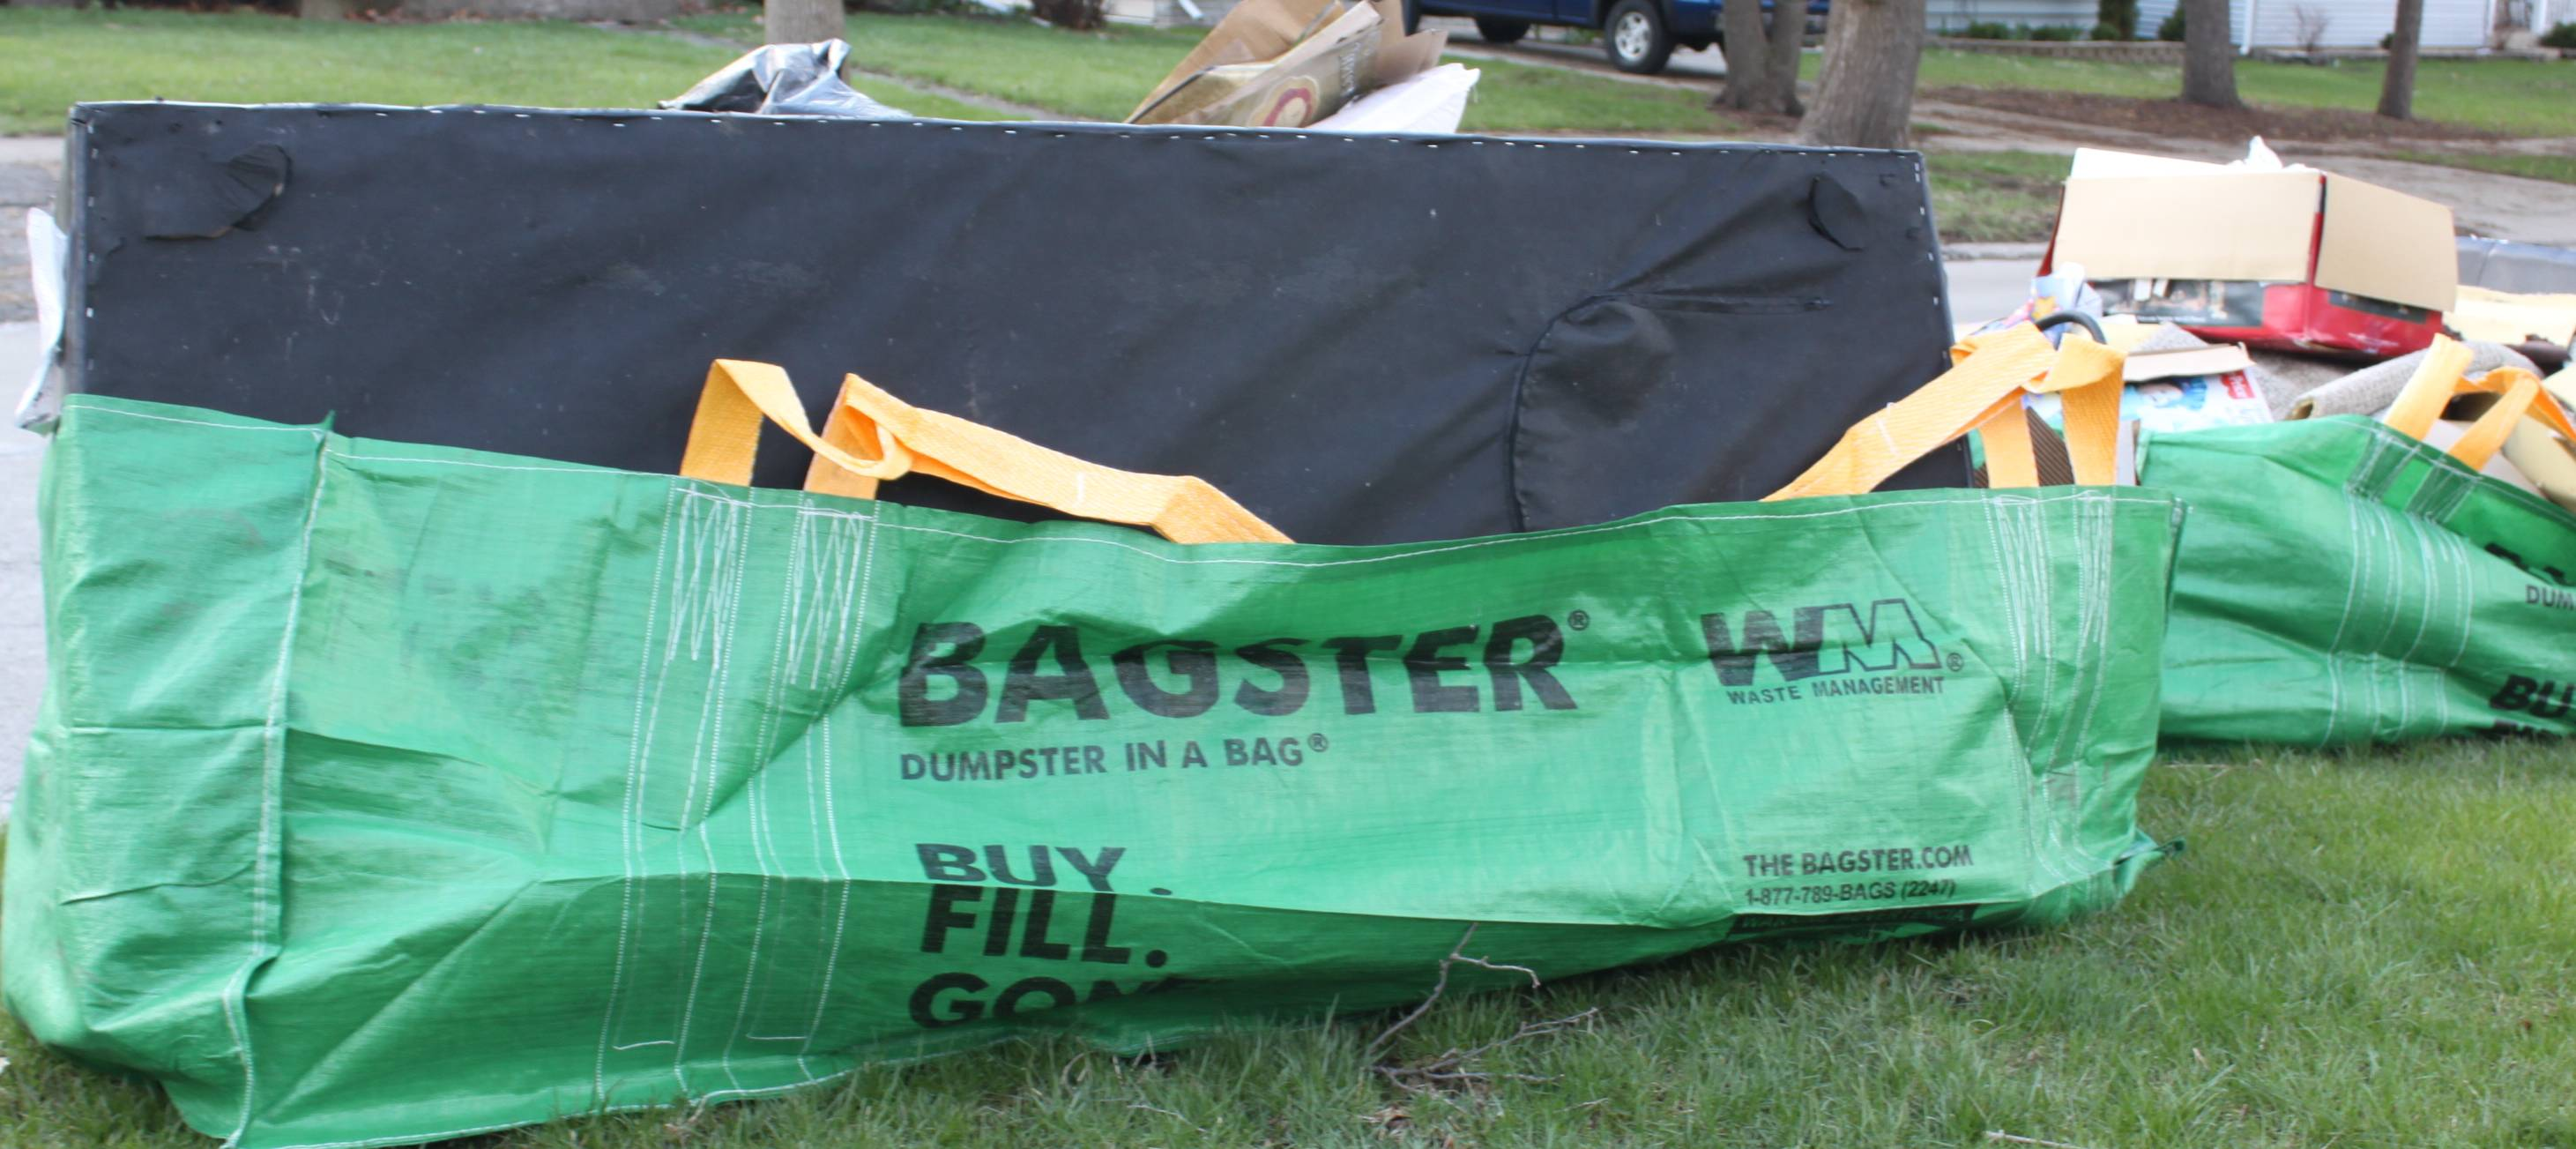 The Bagster� Dumpster in a Bag� awaits collection by Waste Management after recent flooding in western suburbs.